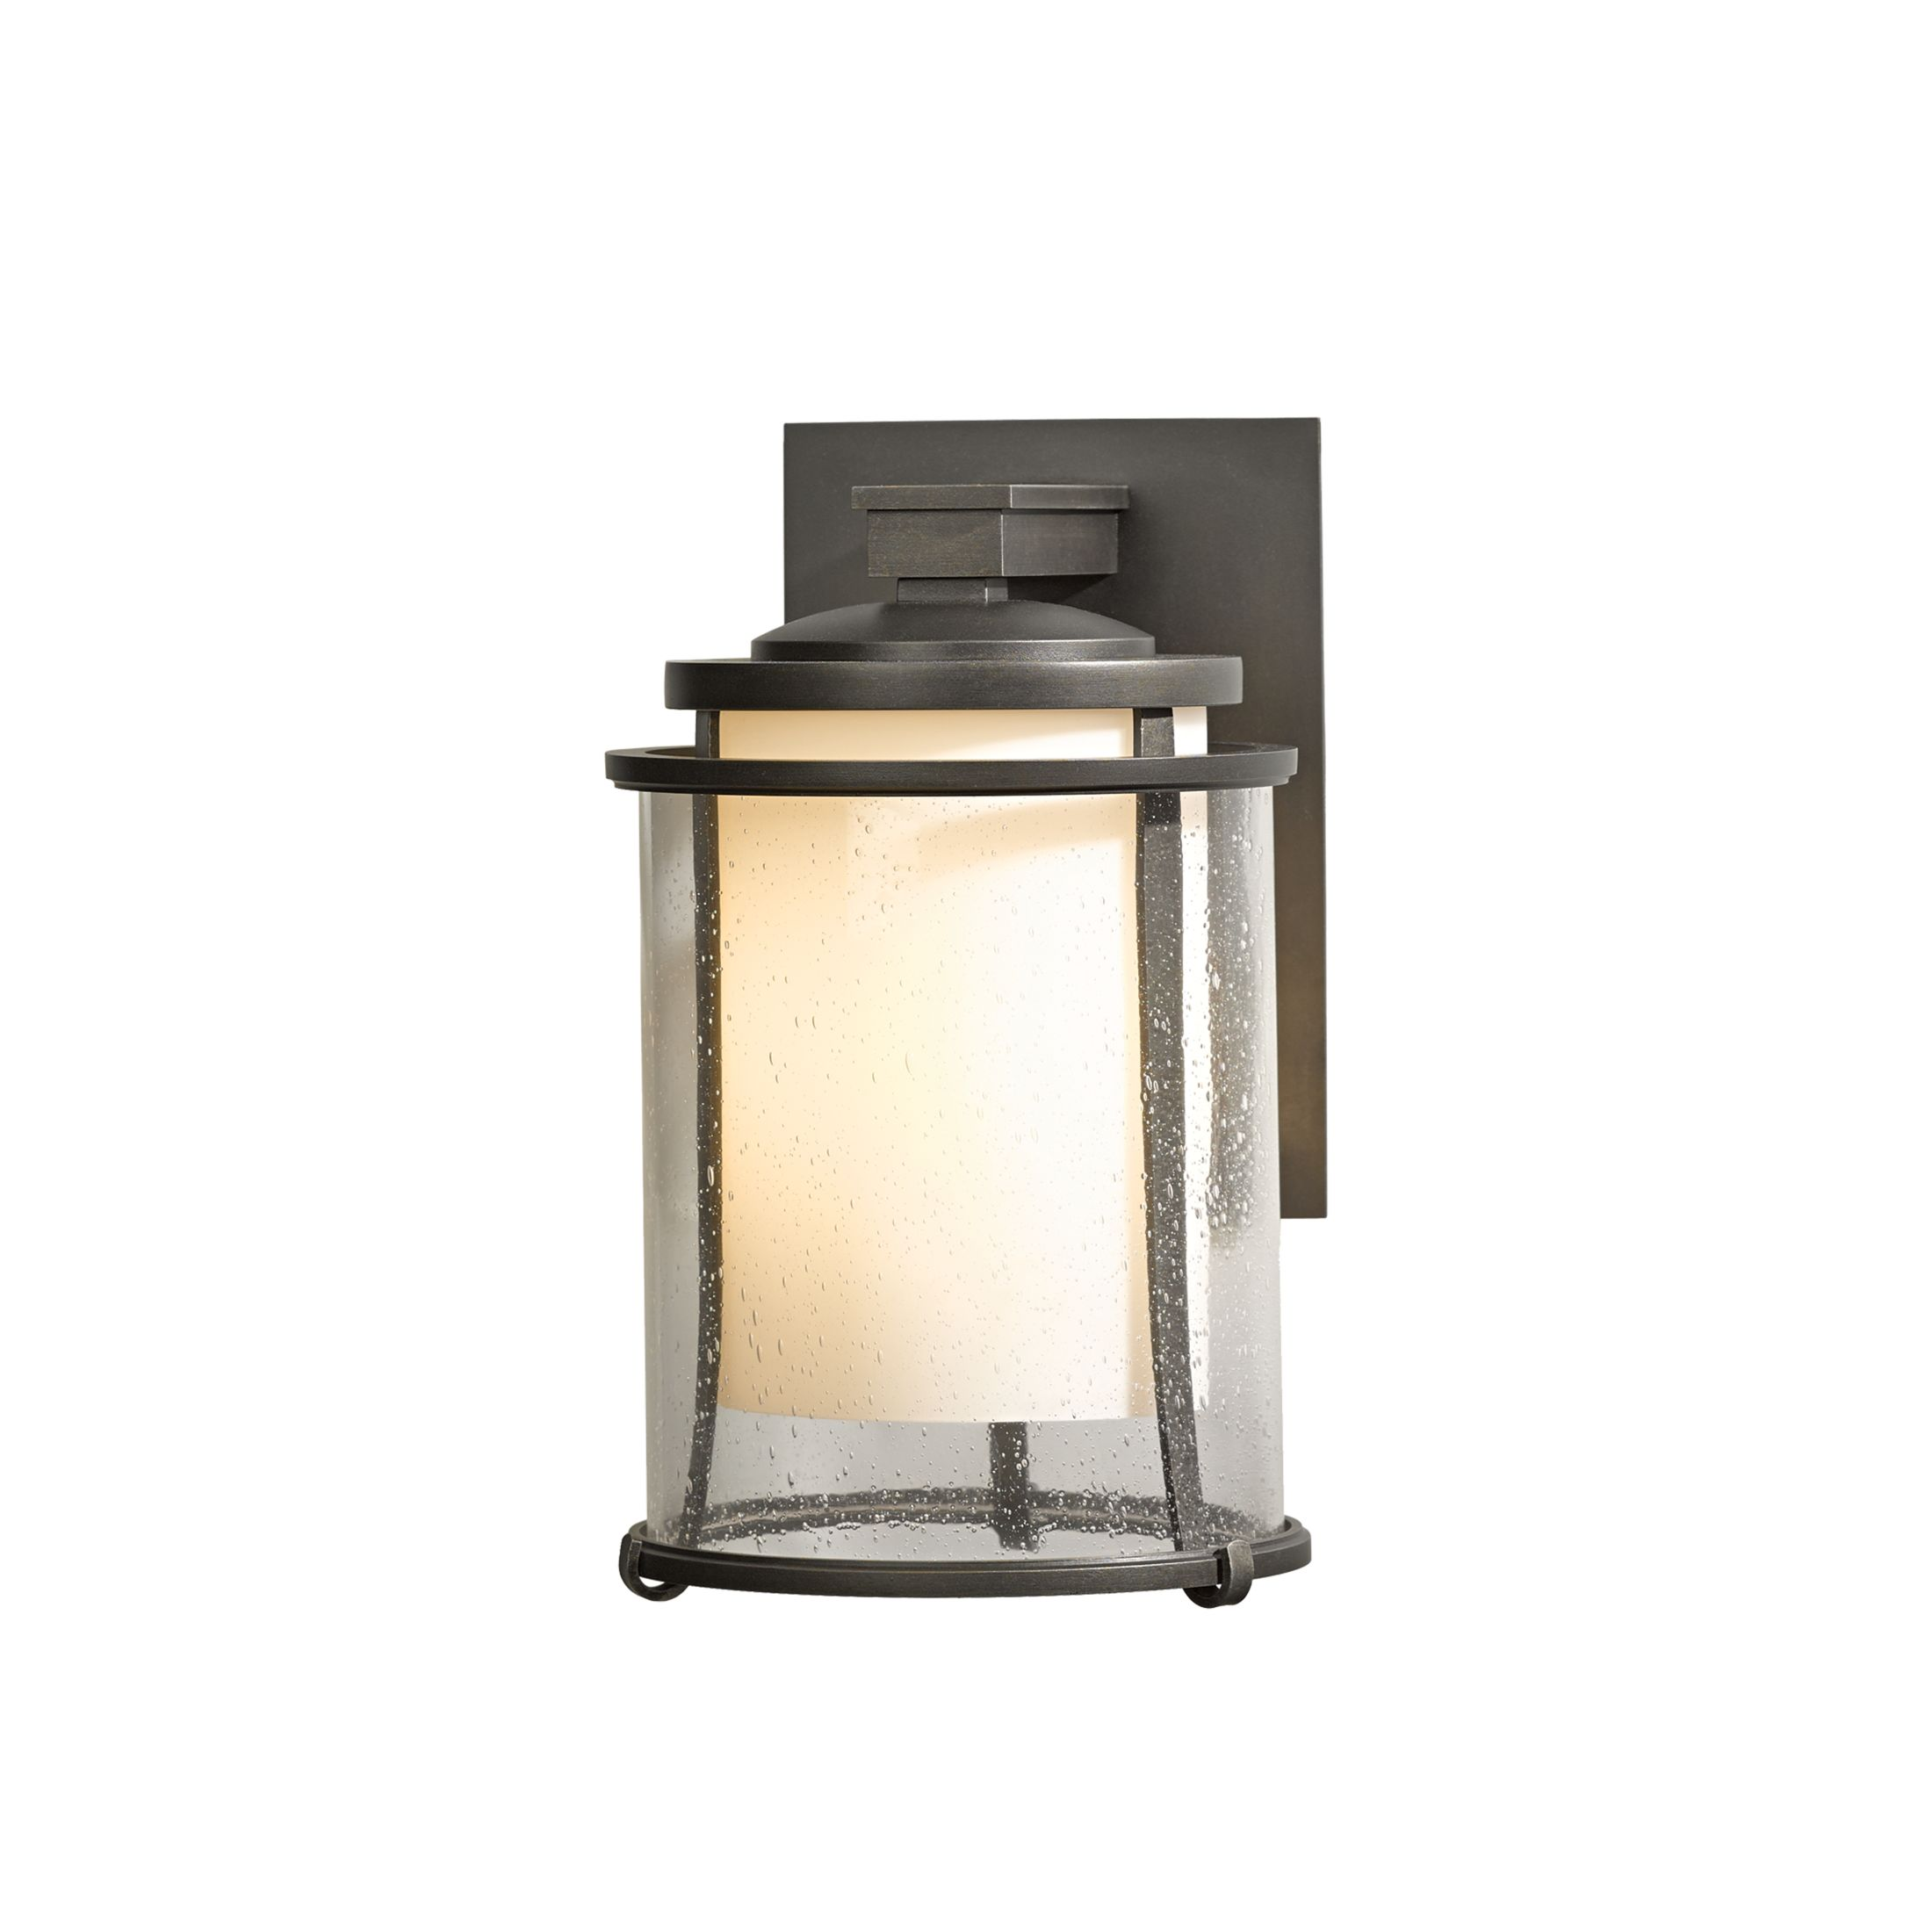 Thumbnail for Meridian Outdoor Sconce